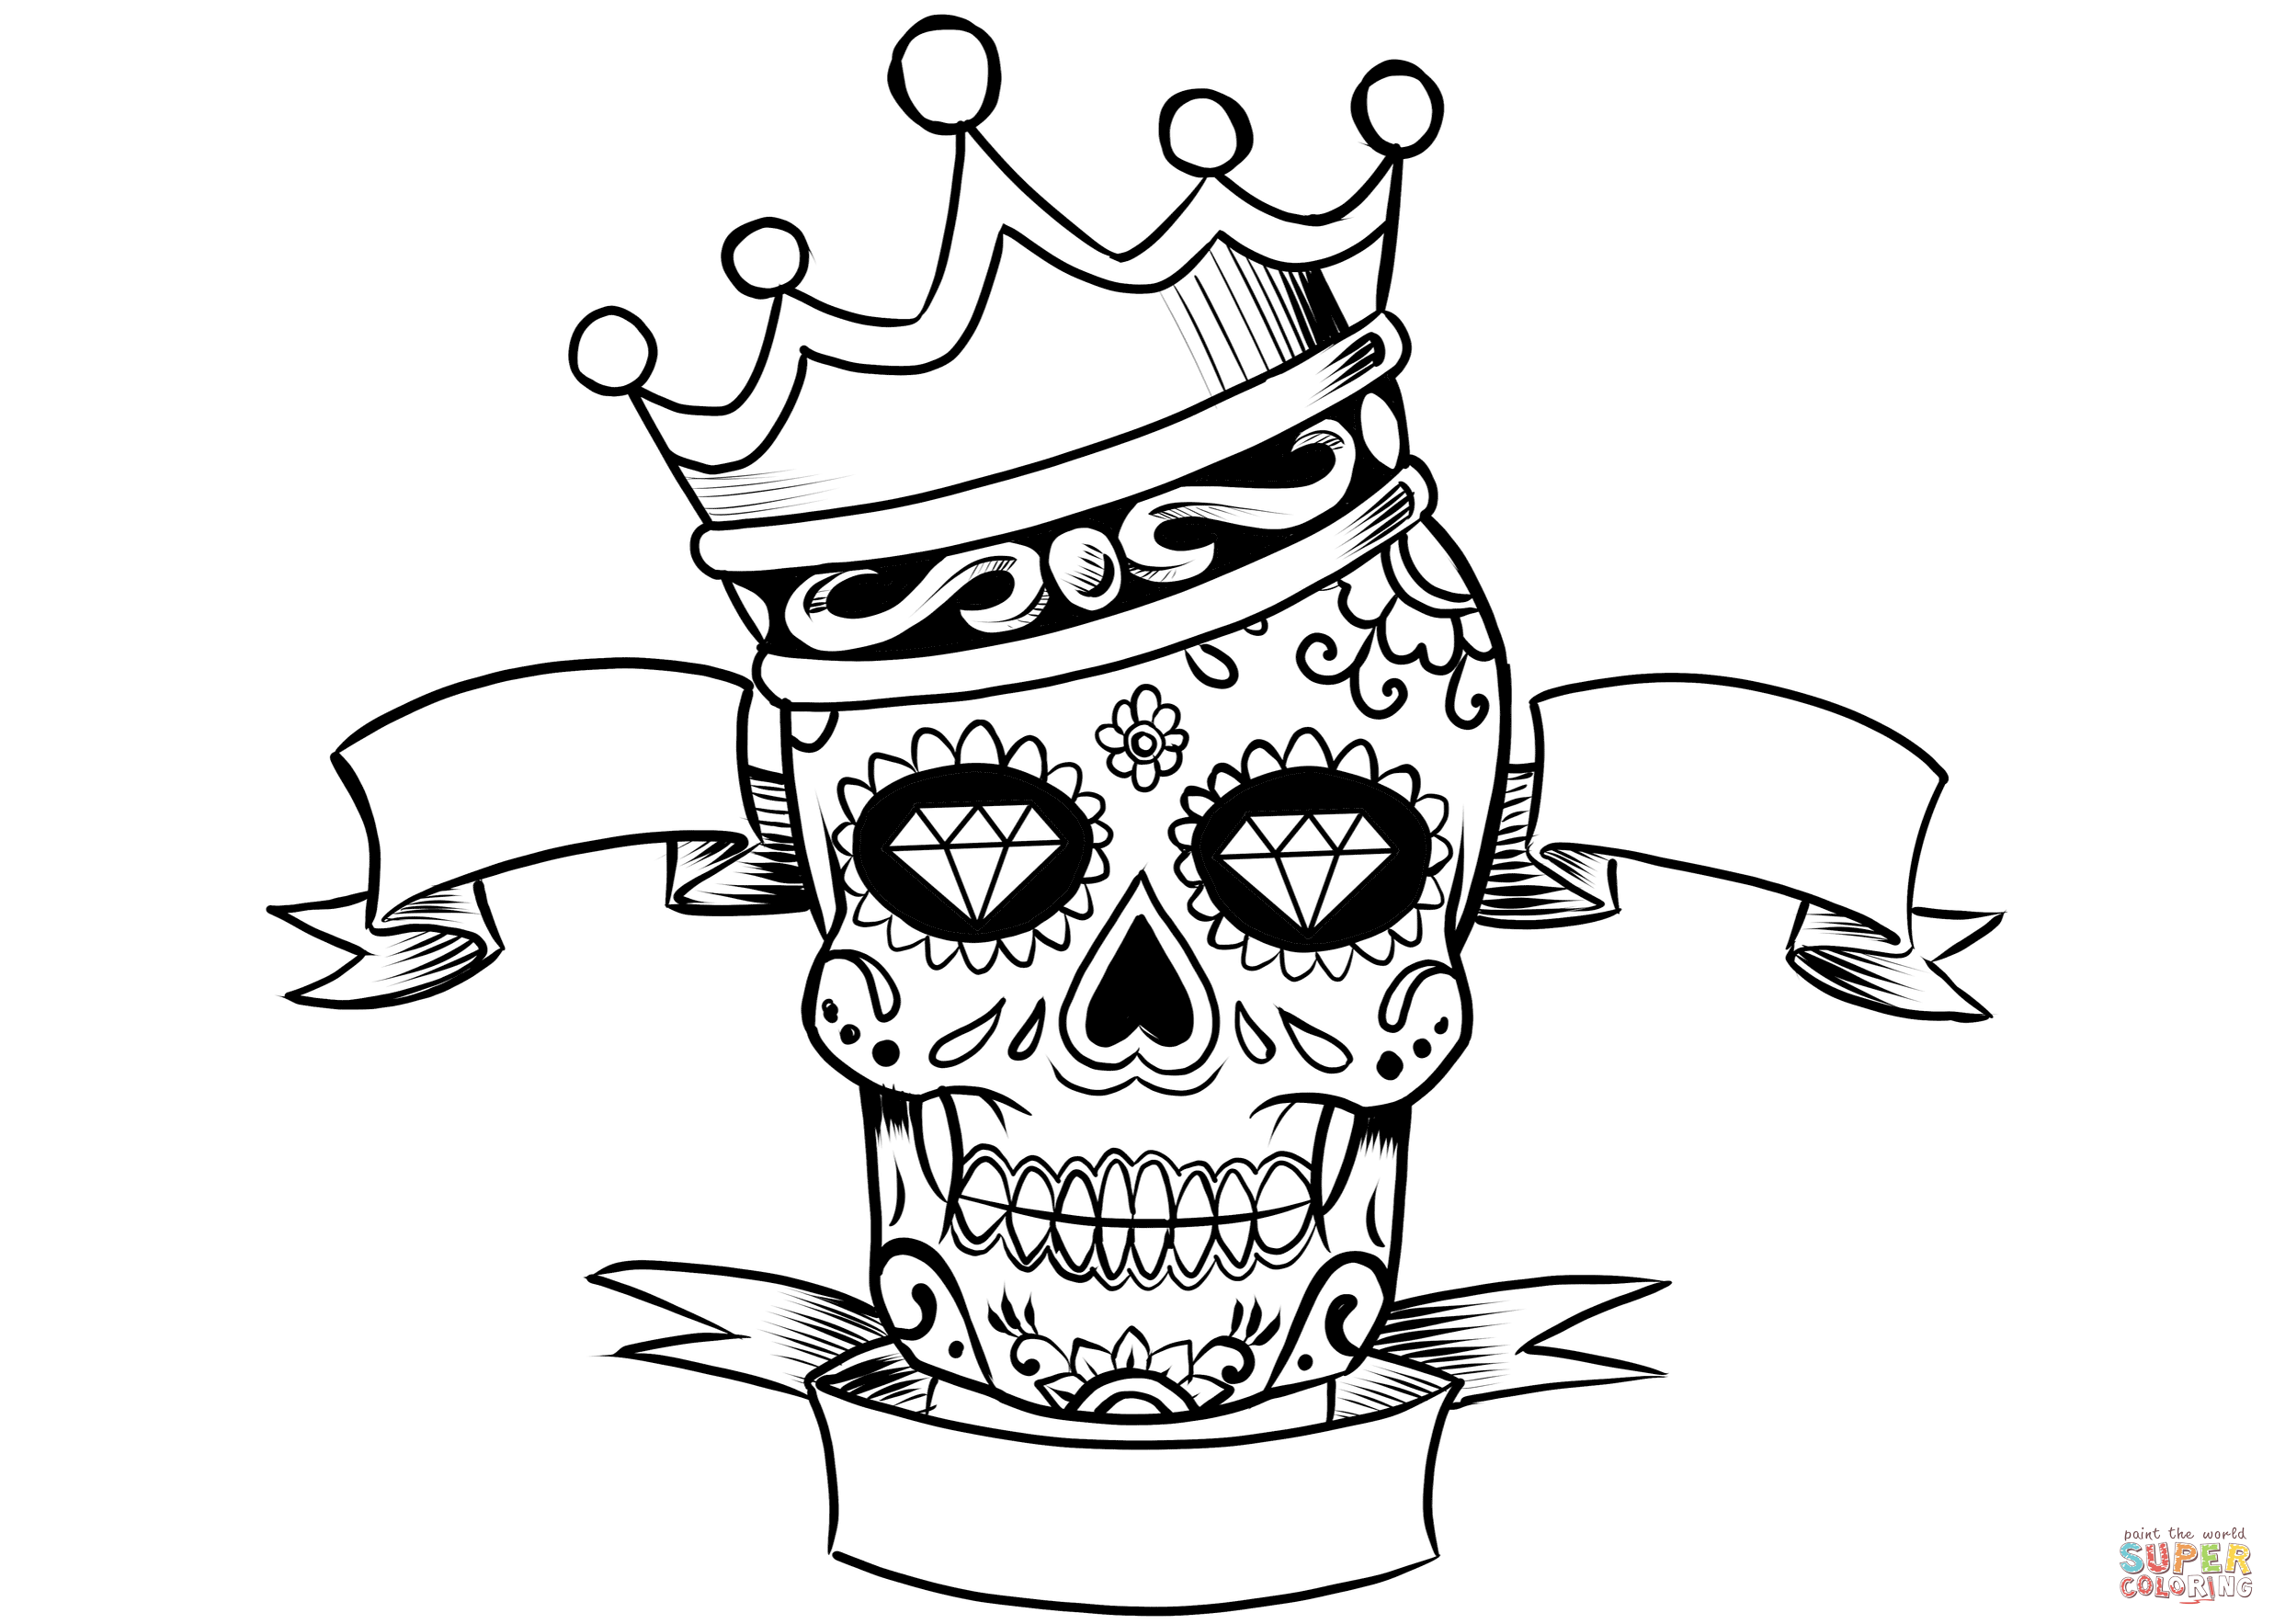 2474x1767 Sugar Skull With Crown Coloring Page Free Printable Coloring Pages